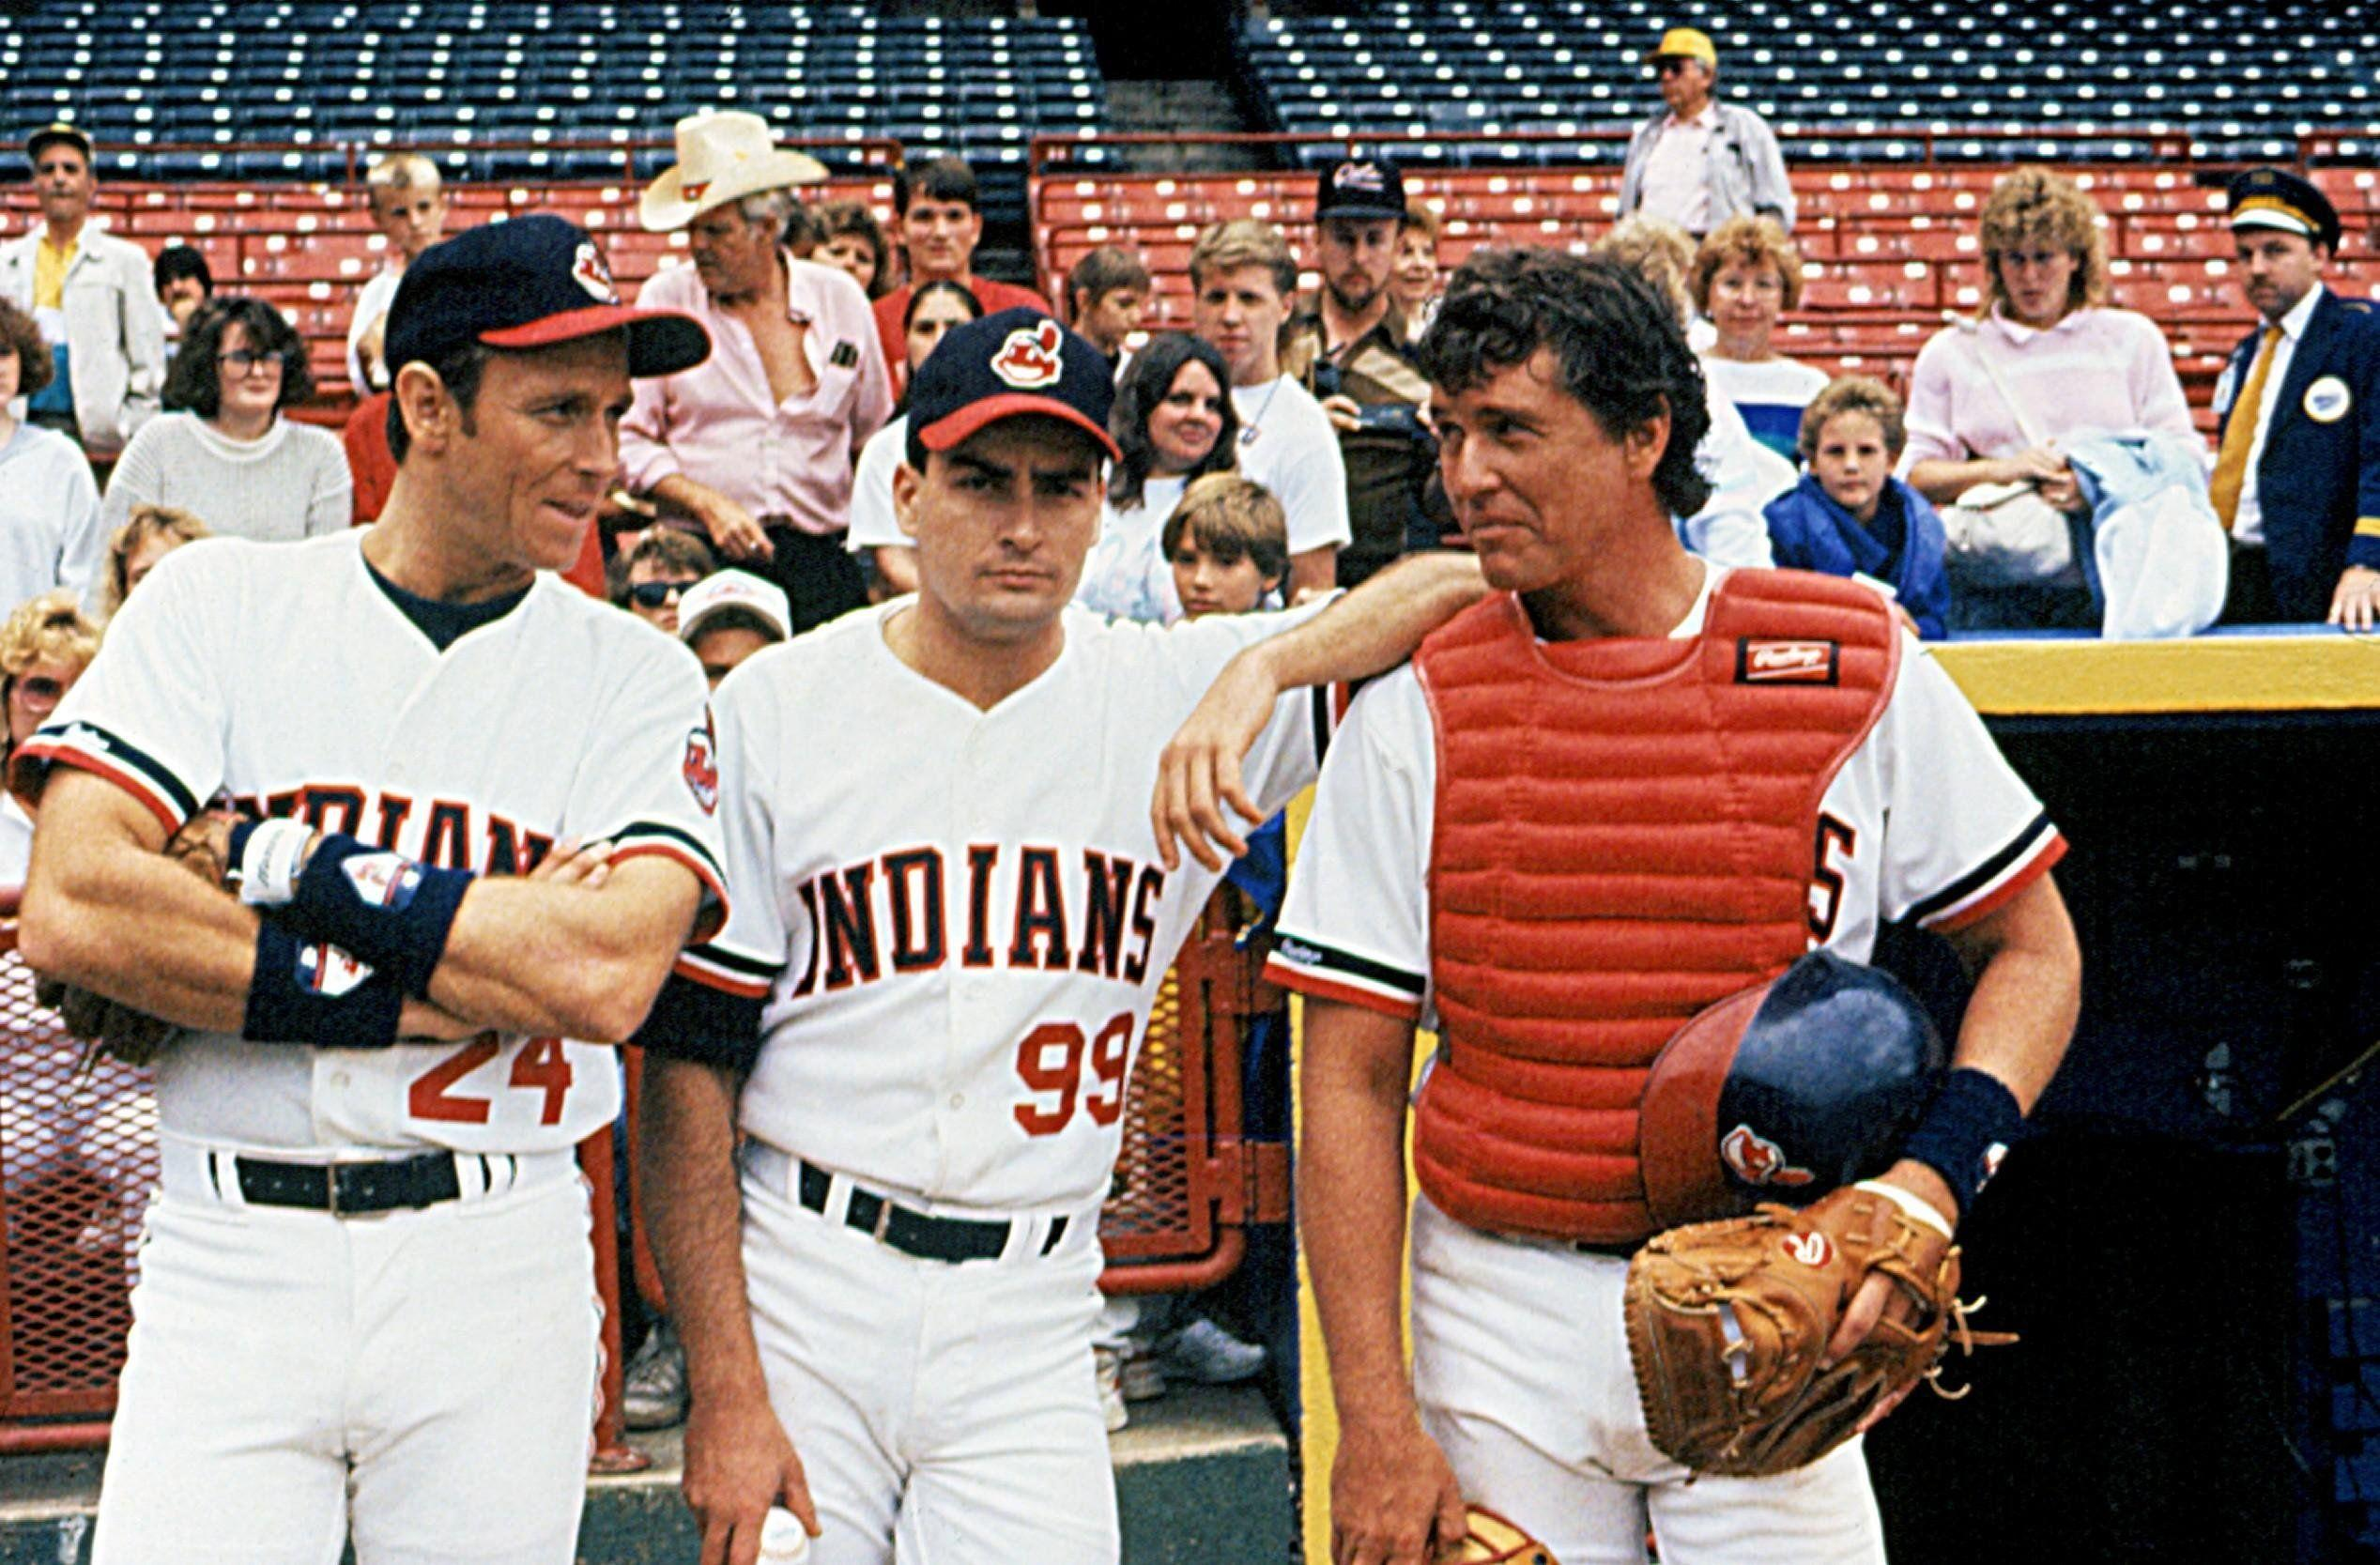 Major League turns 30: Behind-the-scenes stories about Wild